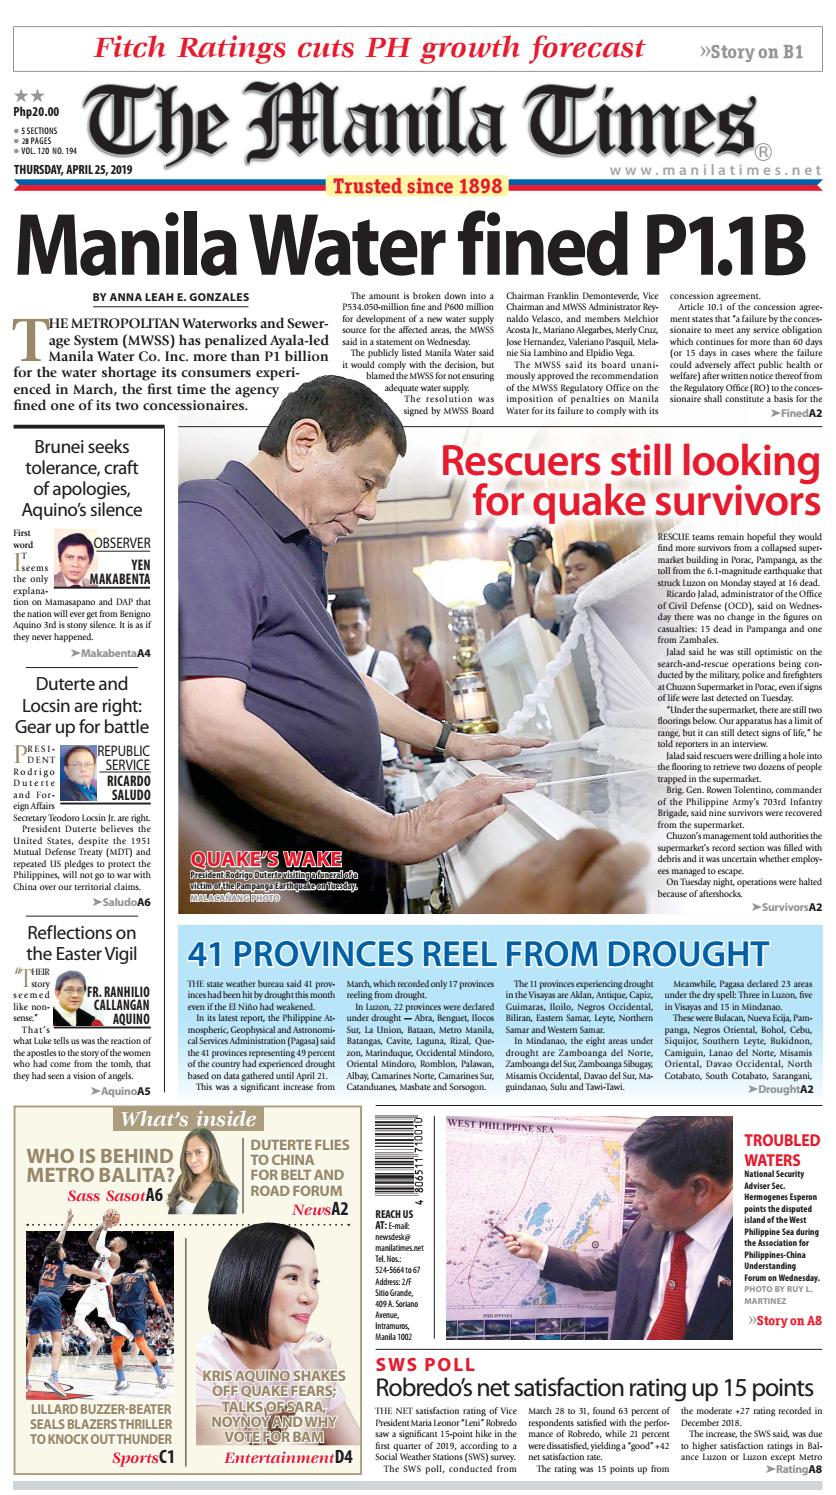 THE MANILA TIMES | APRIL 25, 2019 by The Manila Times - issuu